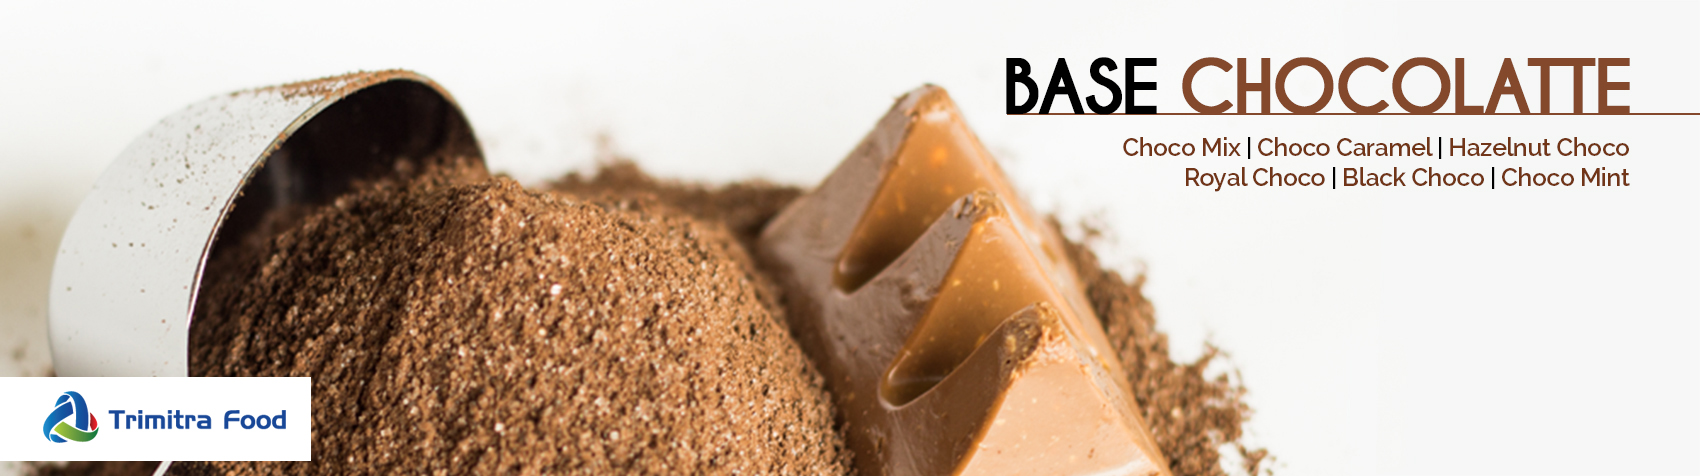 header-base-chocolatte-2-rev